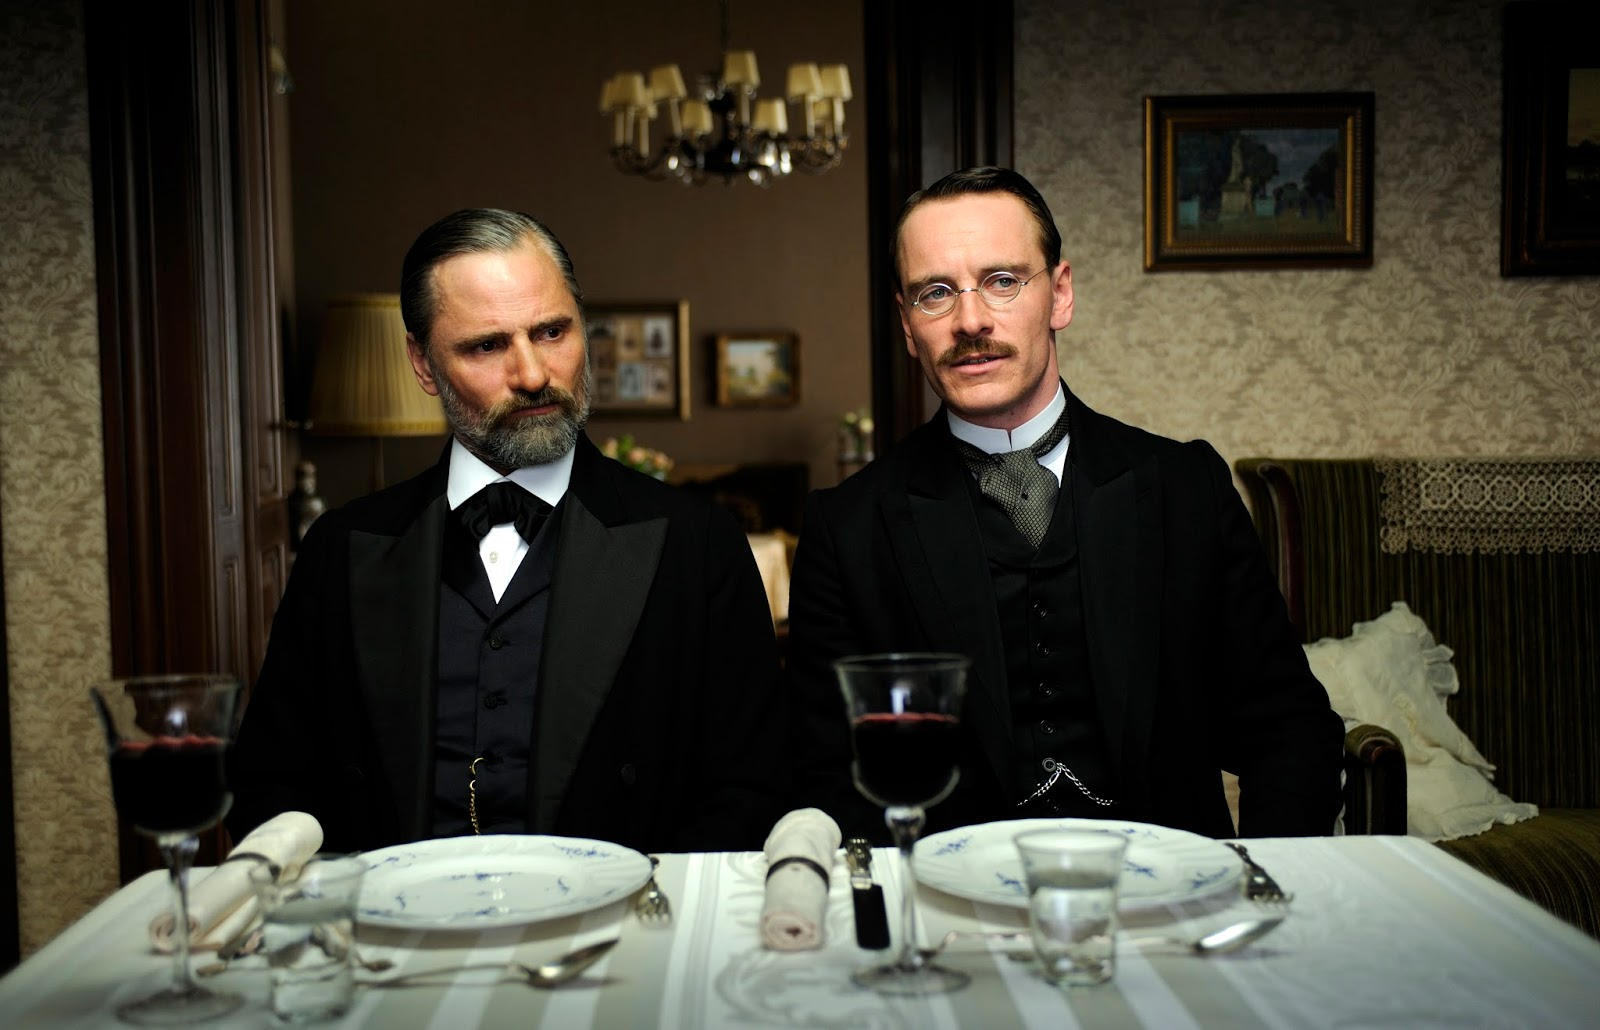 ONLY RECENSIONI TO PLAY WITH: Prendimi l'anima o A ... A Dangerous Method Freud